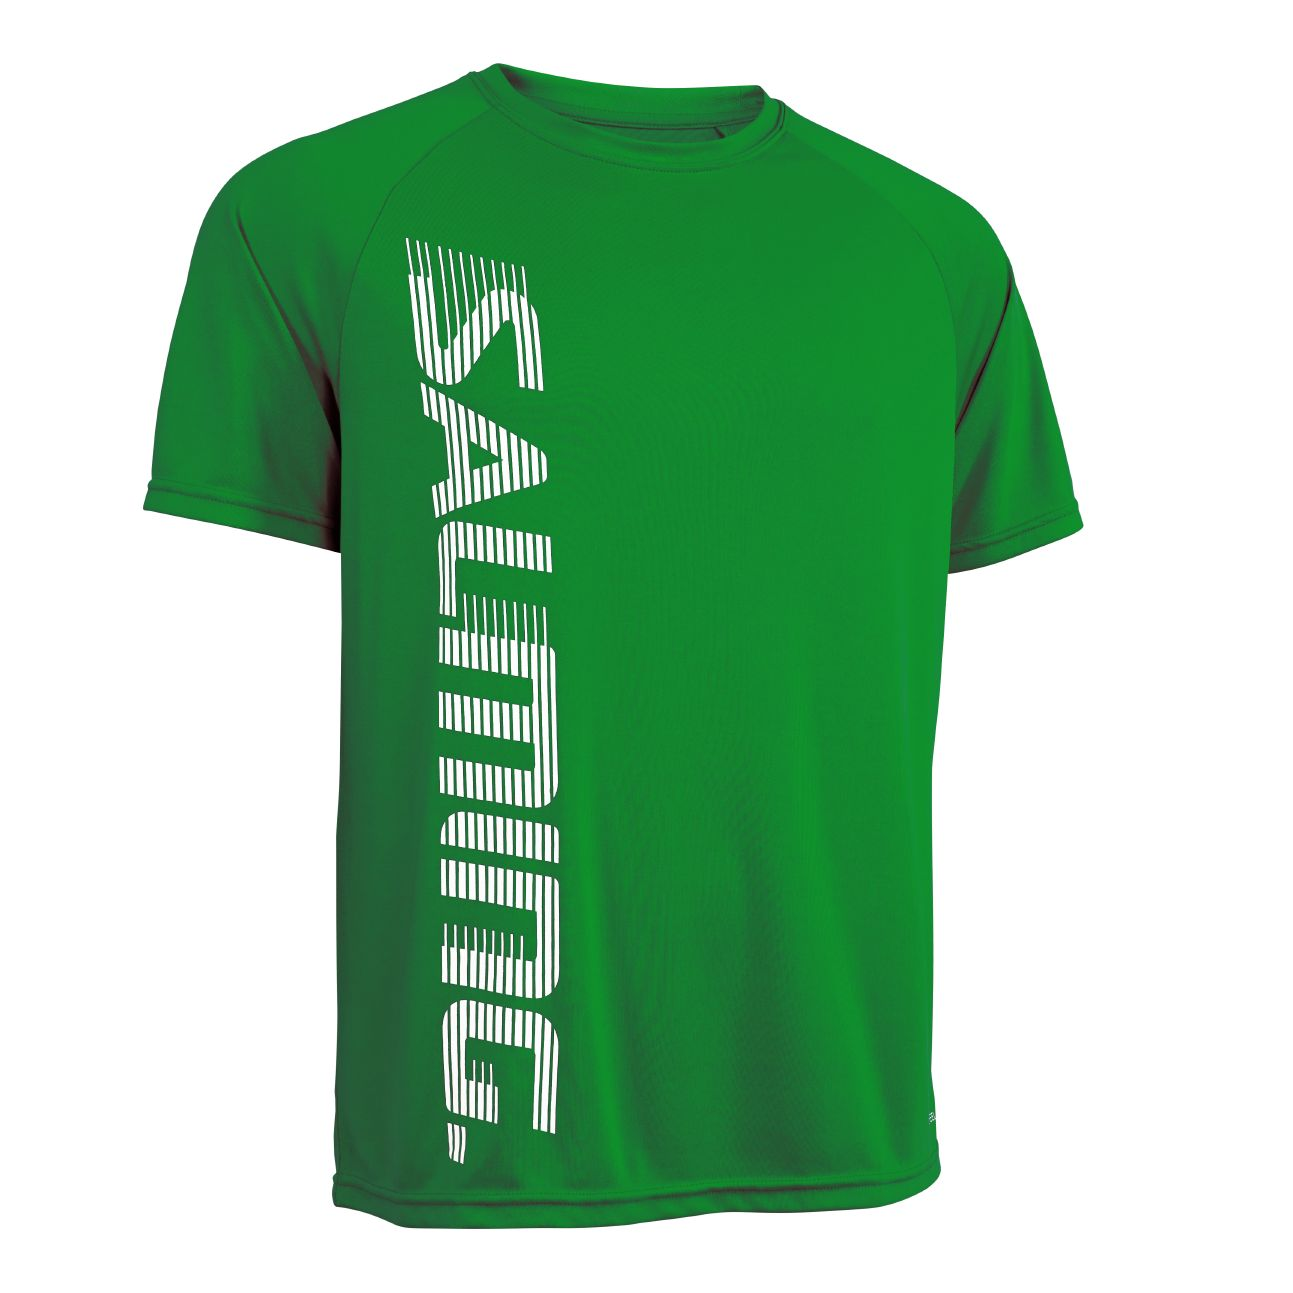 Salming Training Tee 2.0 Červená, XL